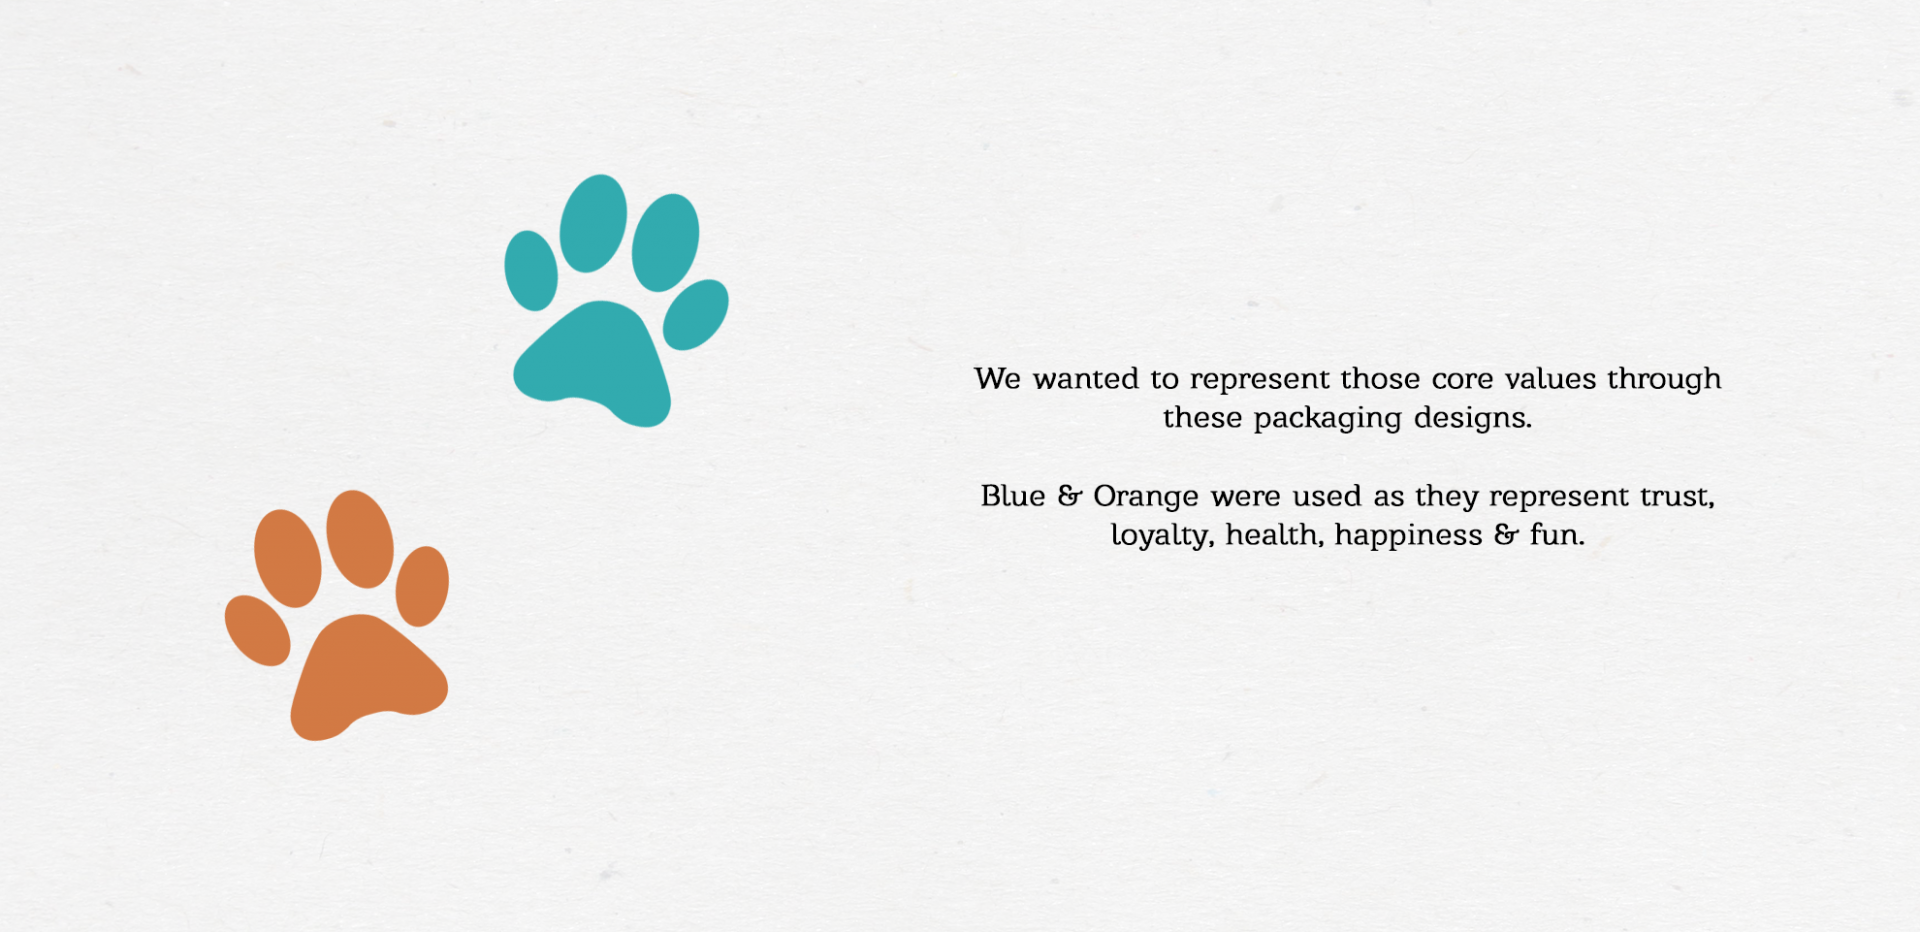 Verve_Concepts_Pet_Food_Branding_Ideas(www.verveconcepts.com)